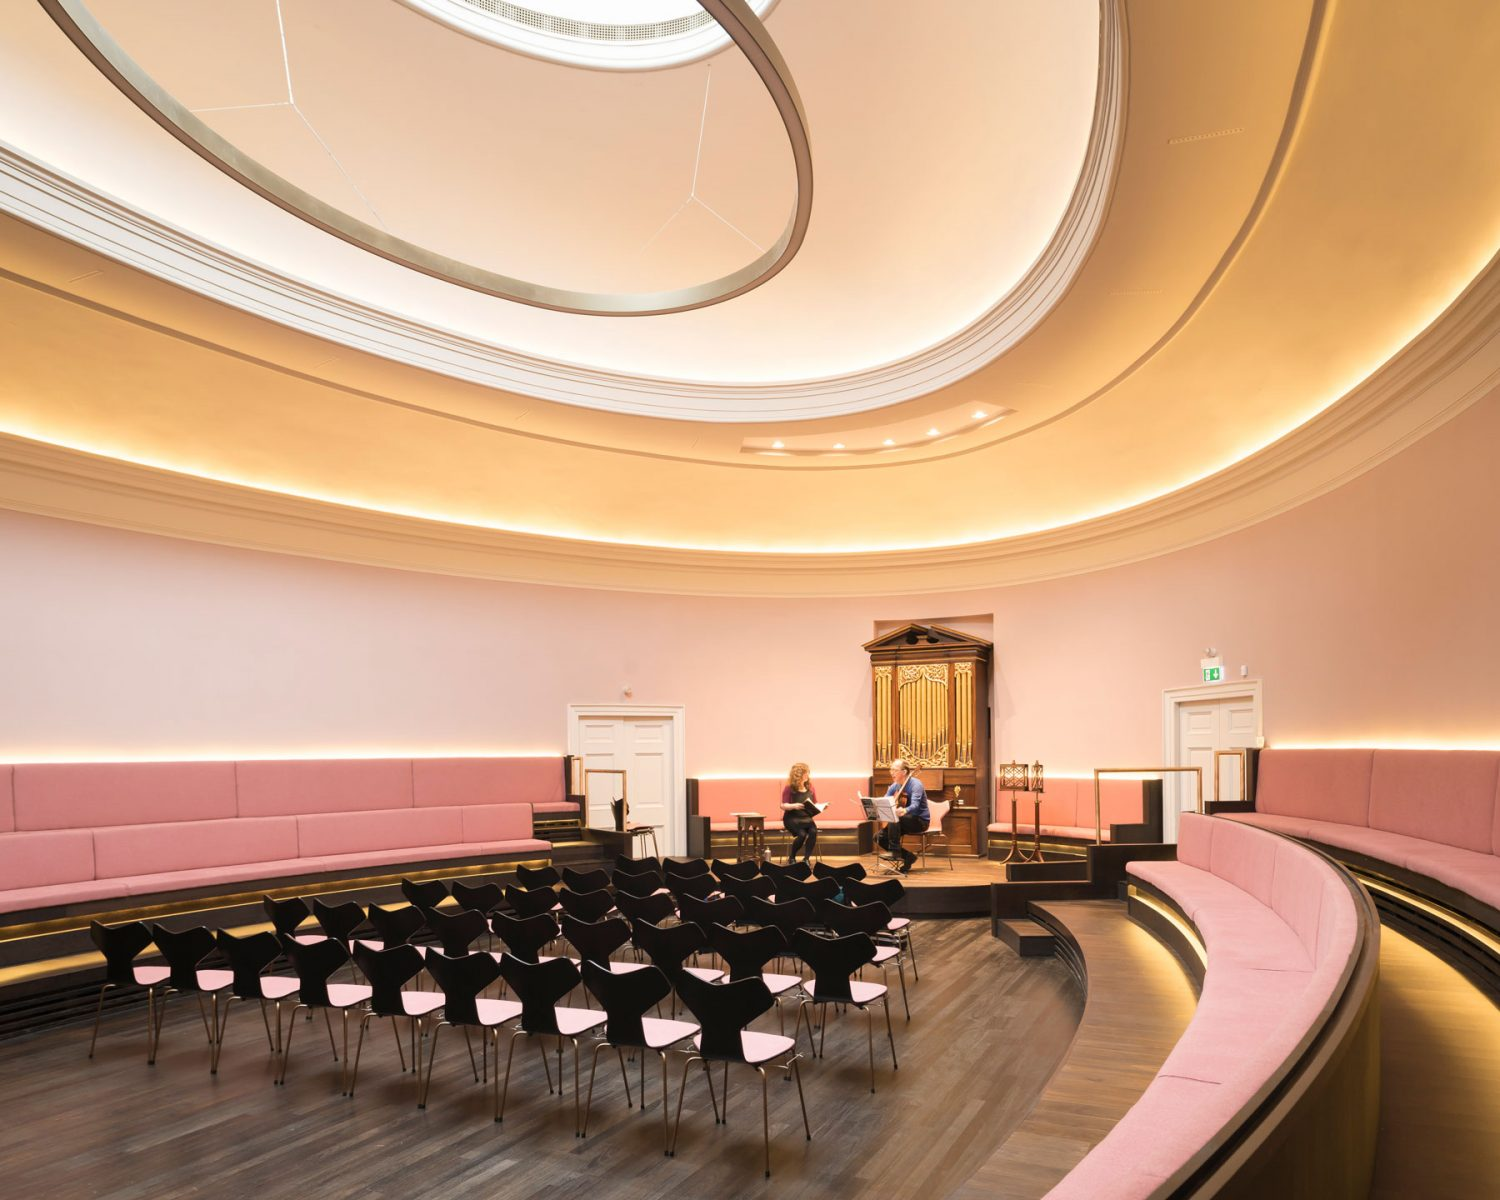 St. Cecilia's Hall Concert Room & Music Museum